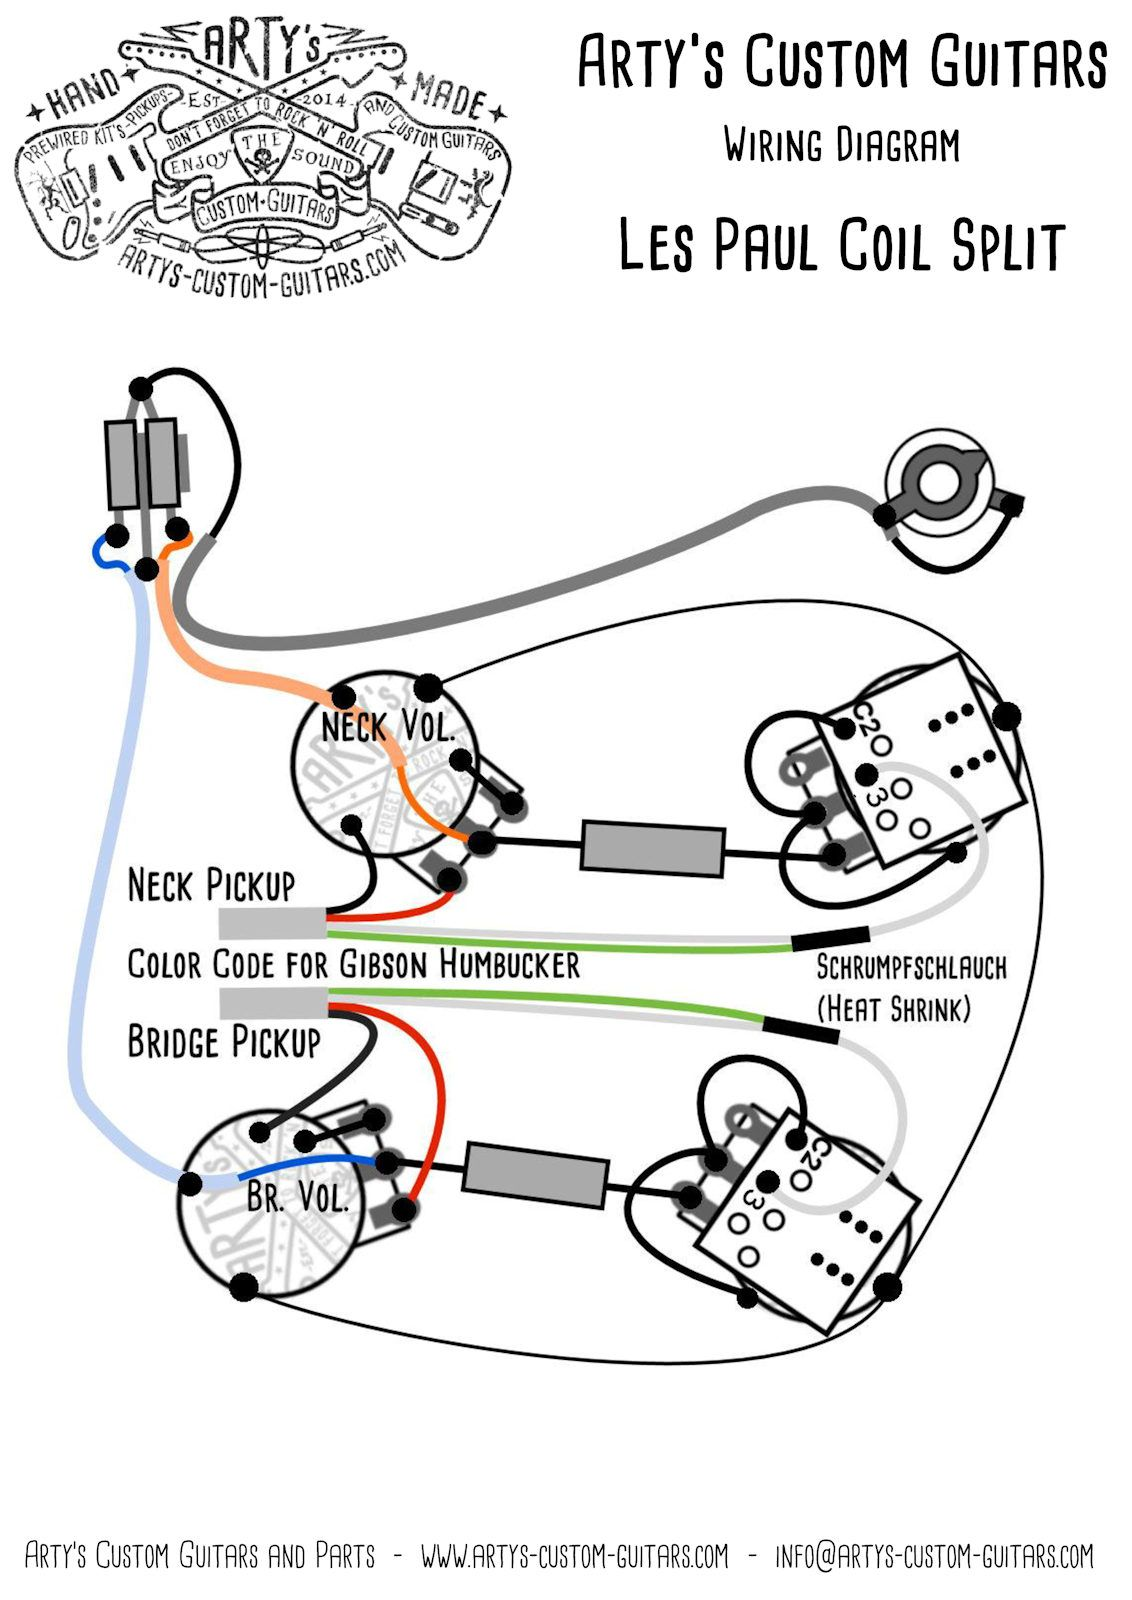 Les Paul Wiring Diagram Treble Bleed